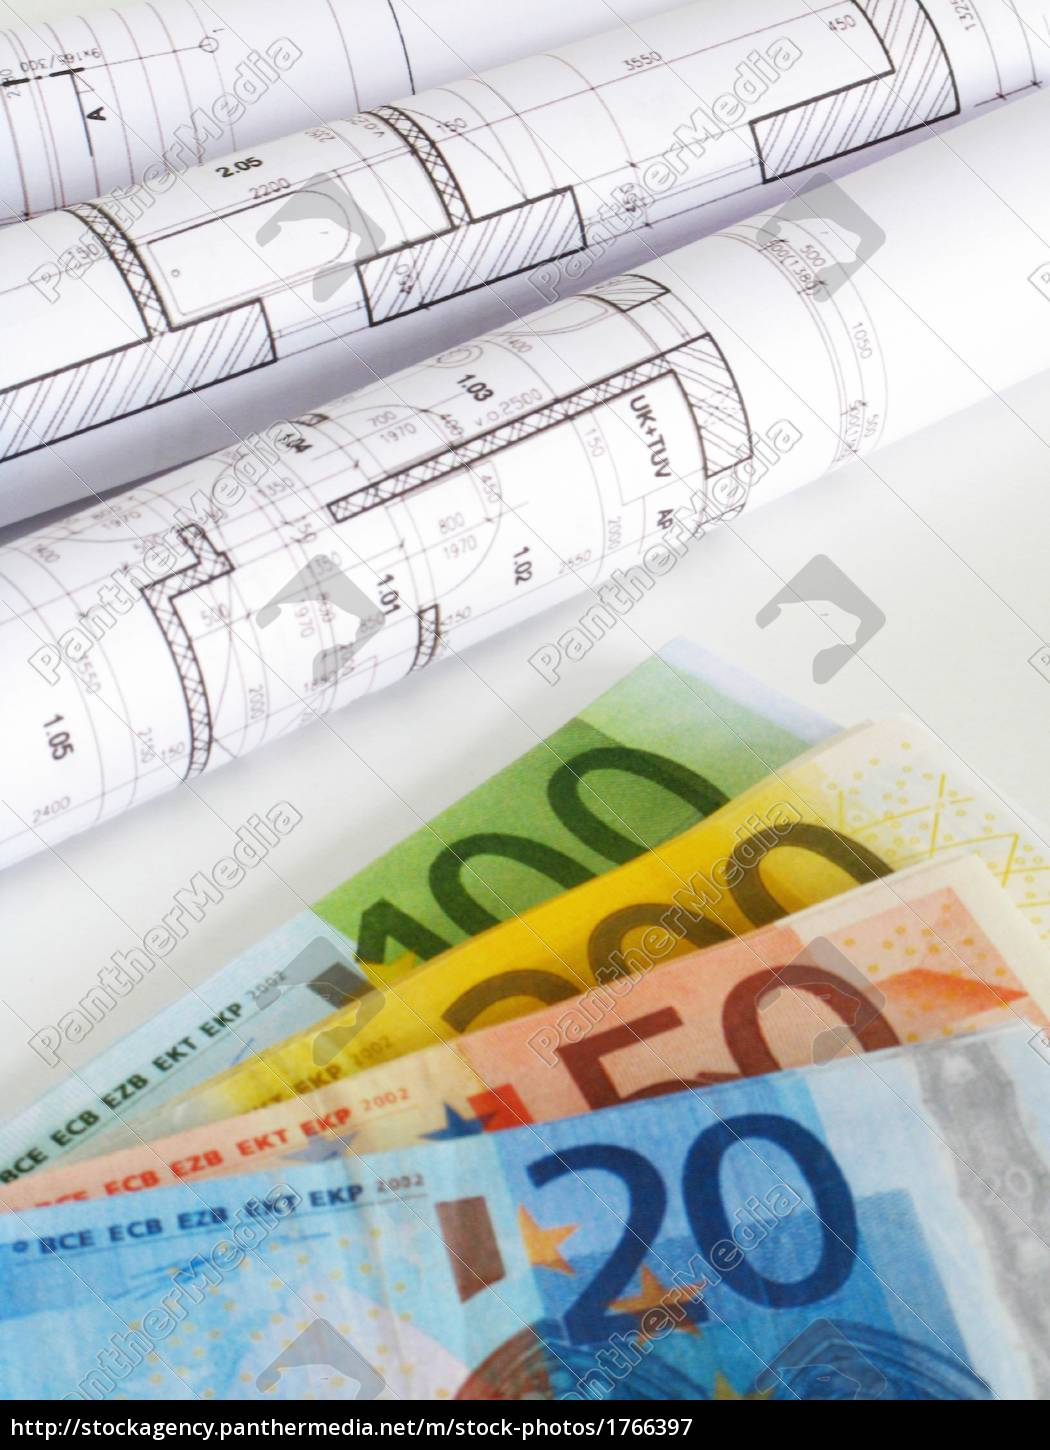 euro, money, and, plans - 1766397